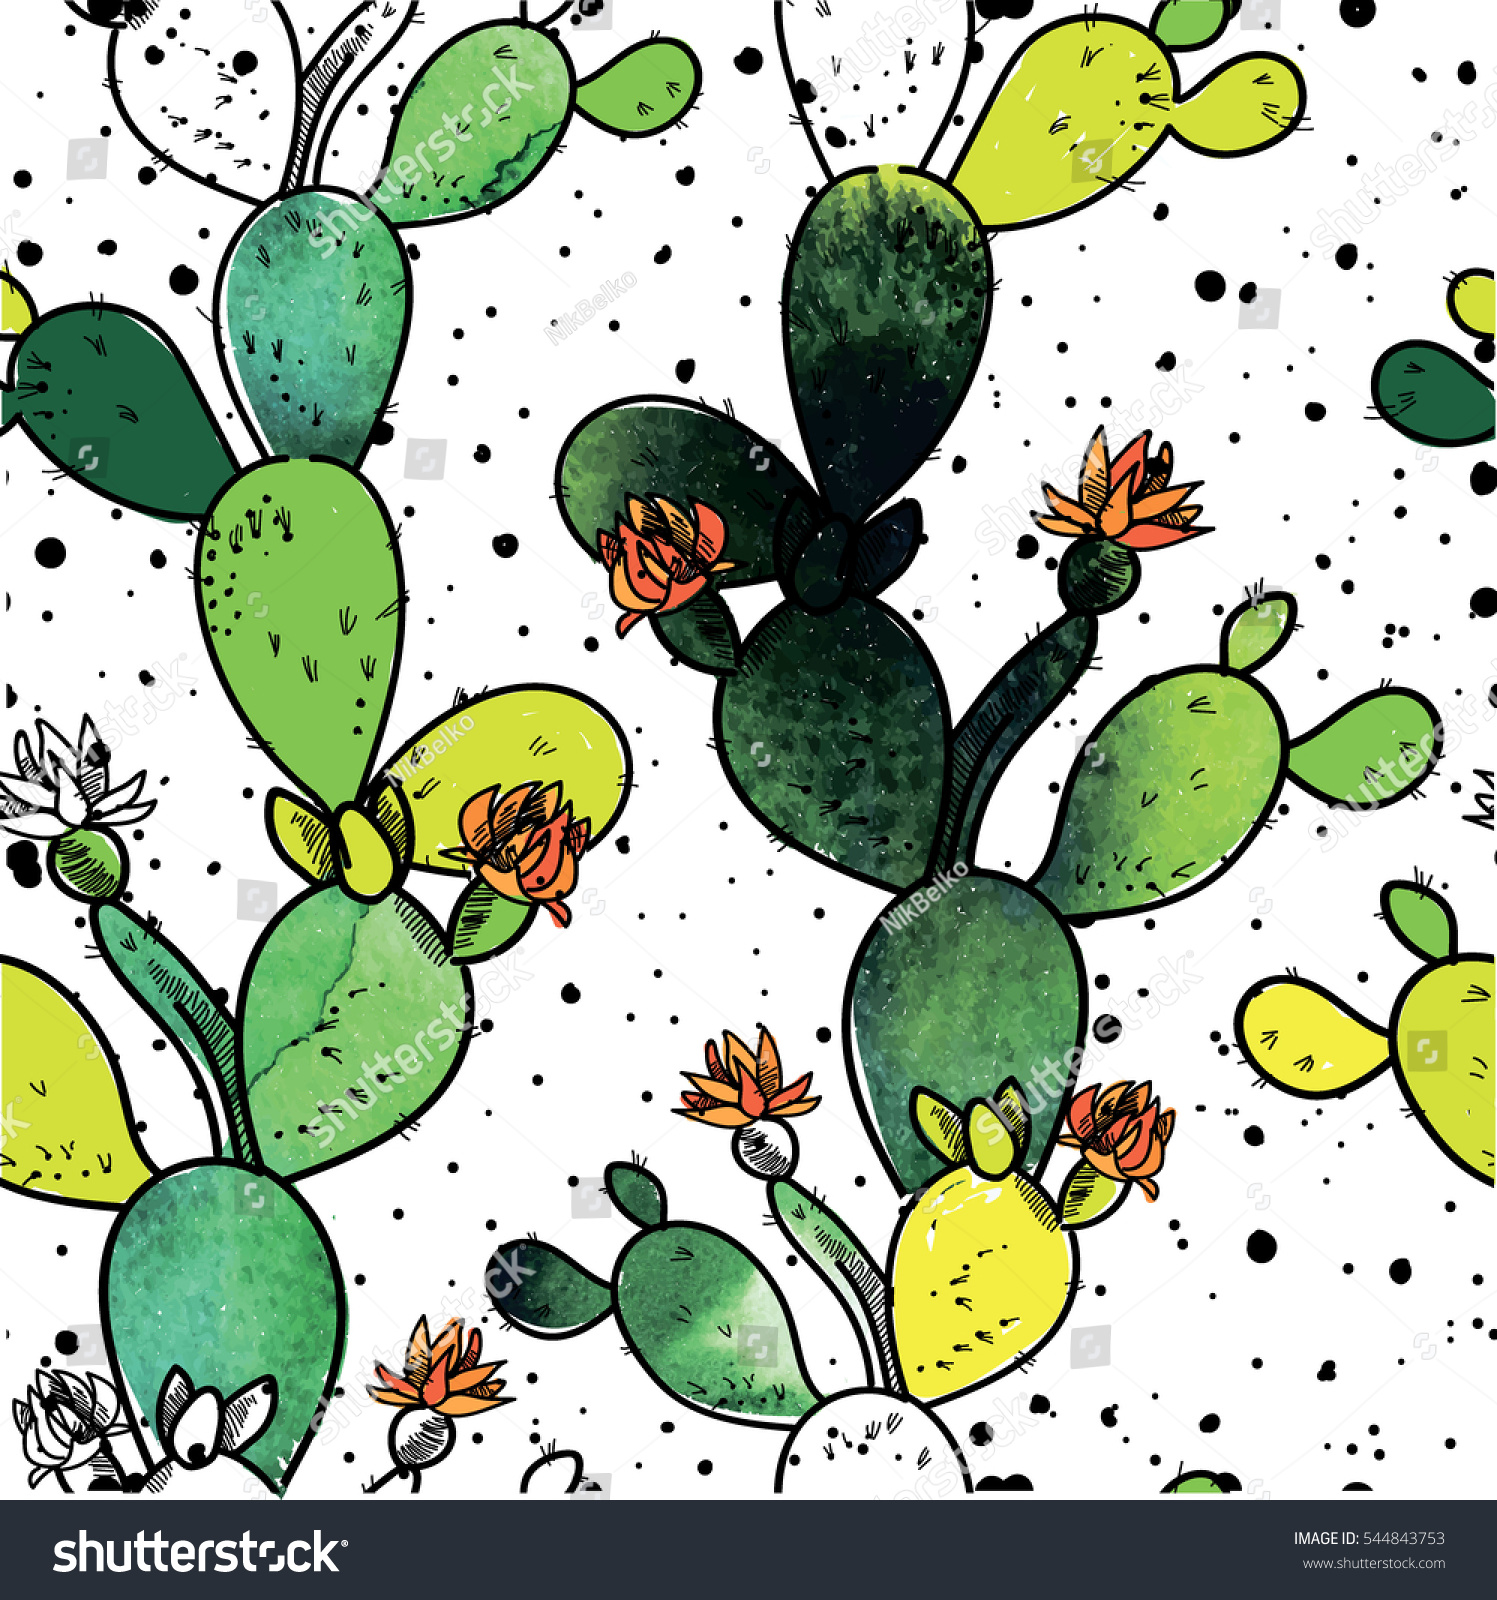 Stylish seamless pattern with cactus drawing by hand with paint texture blooming cactus